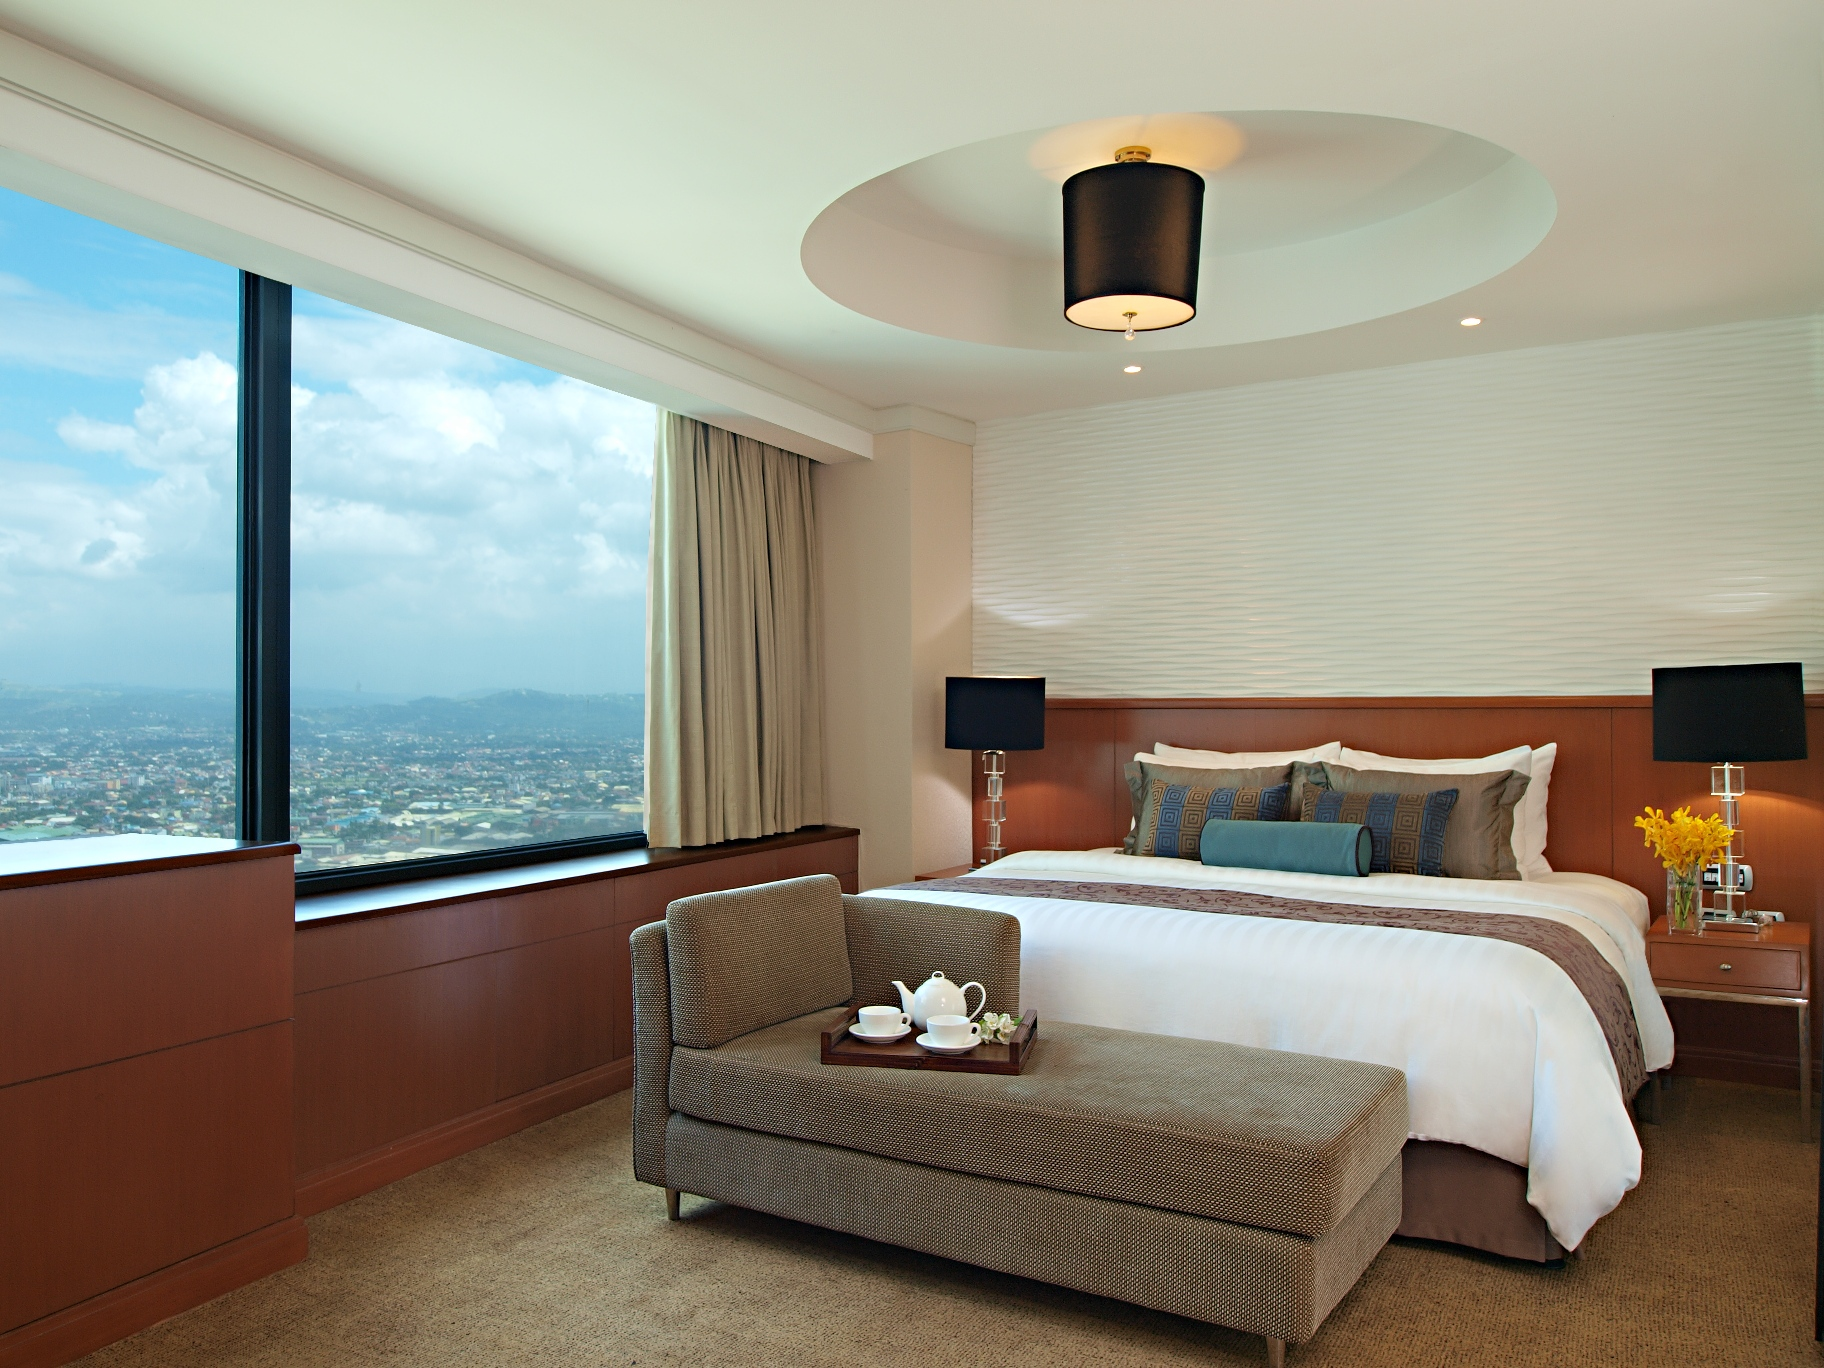 Eastwood Richmonde Hotel's Deluxe King Room